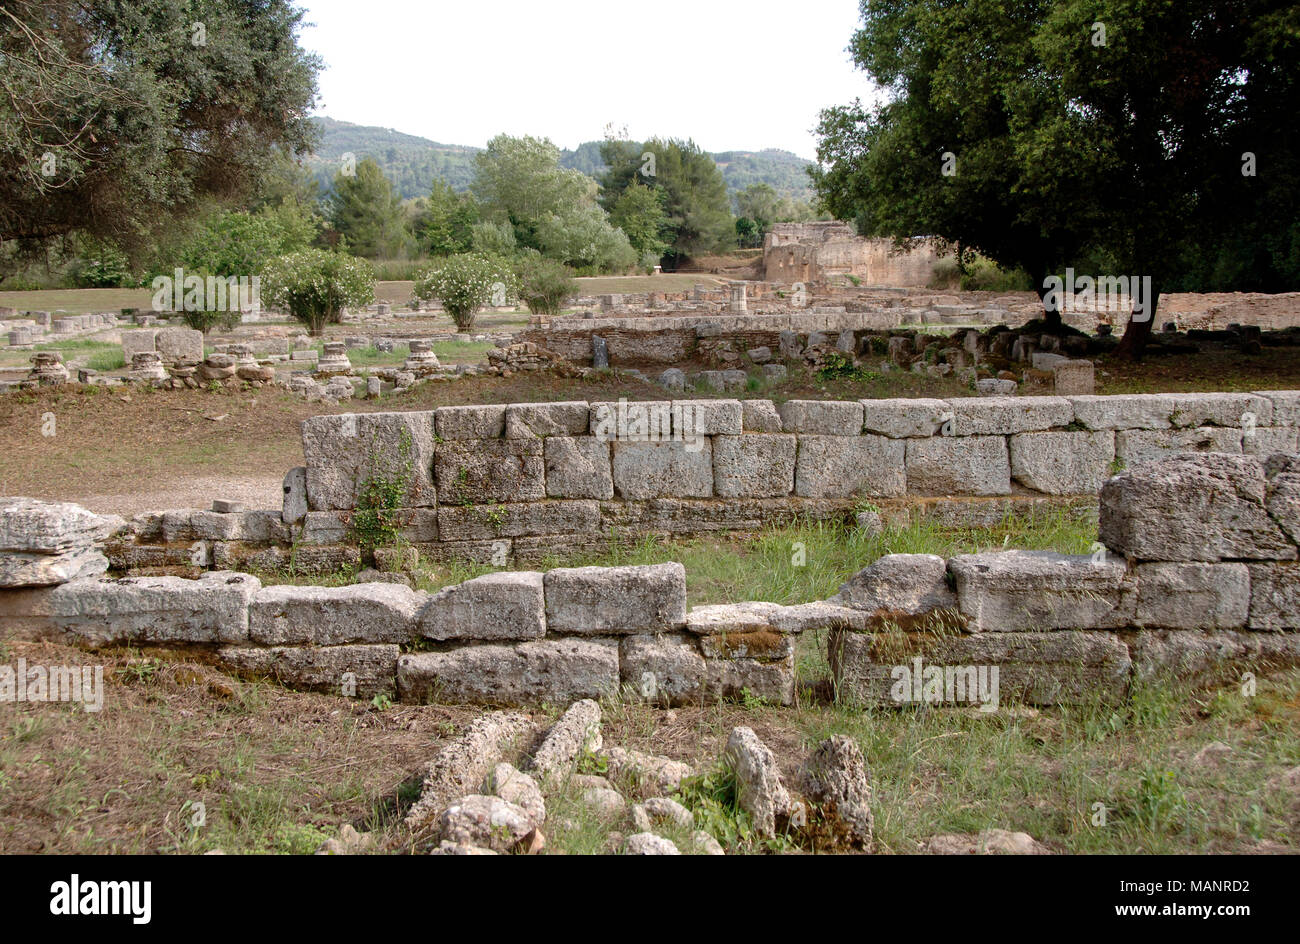 Greece, Olympia. The Leonidaion. Lodging place for athletes taking part in Olympic games. Southwest of the sanctuary, ca. 330 BC. Designed by Leonidas of Naxos. Ruins. Peloponnese. - Stock Image